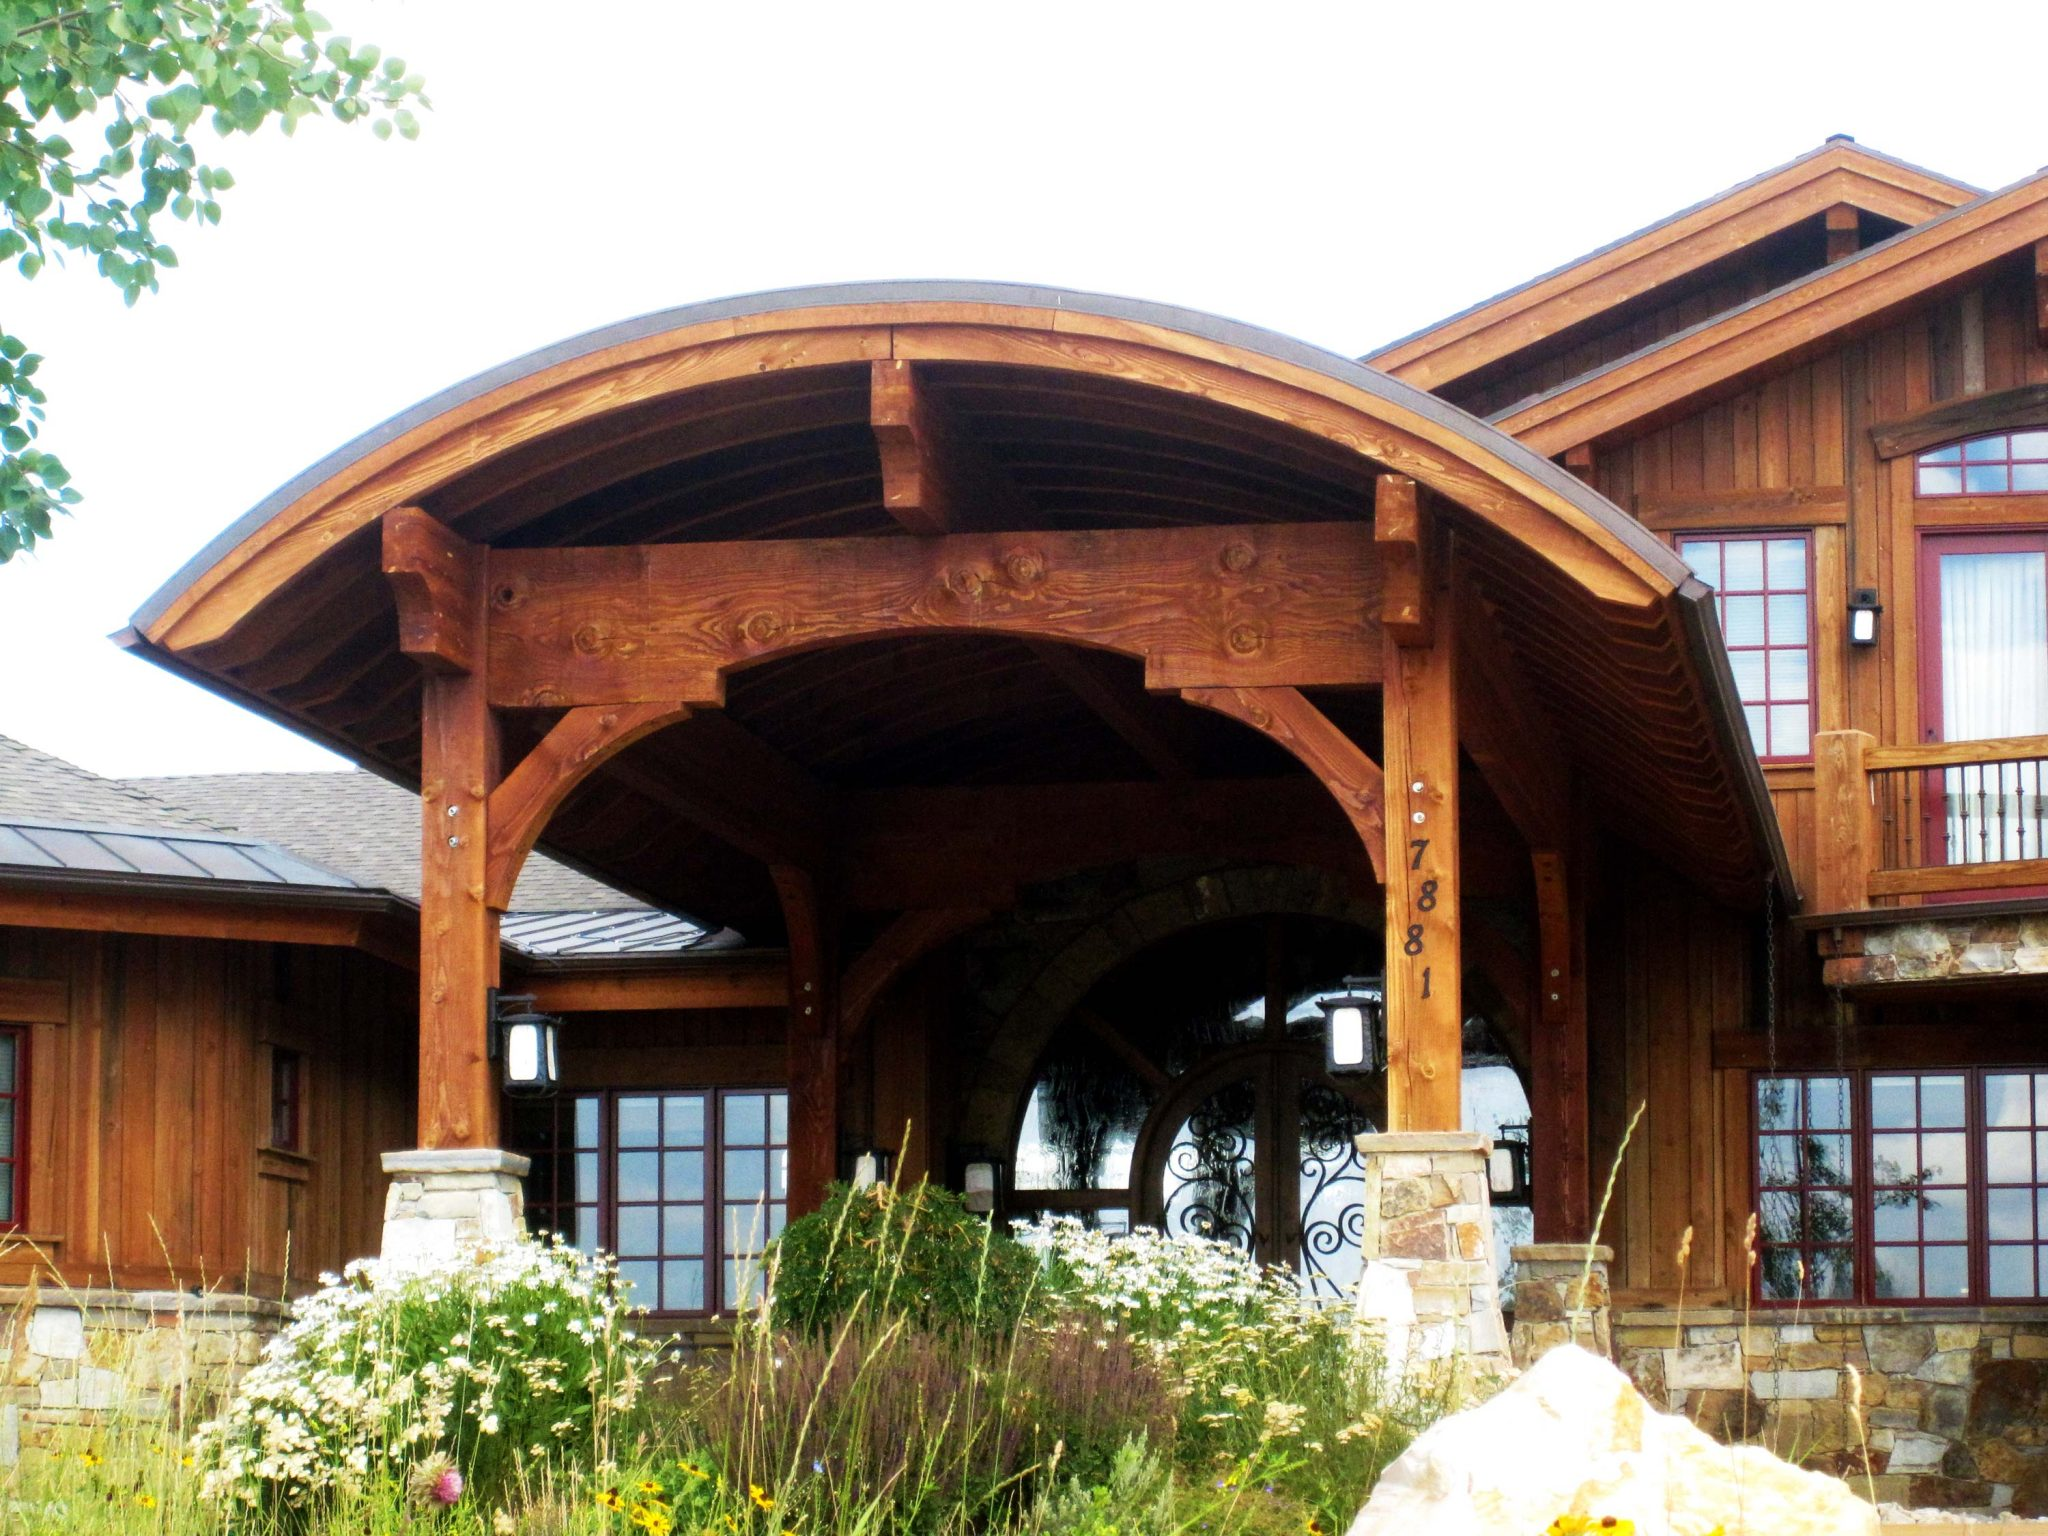 entry-arched-pavilion-timber